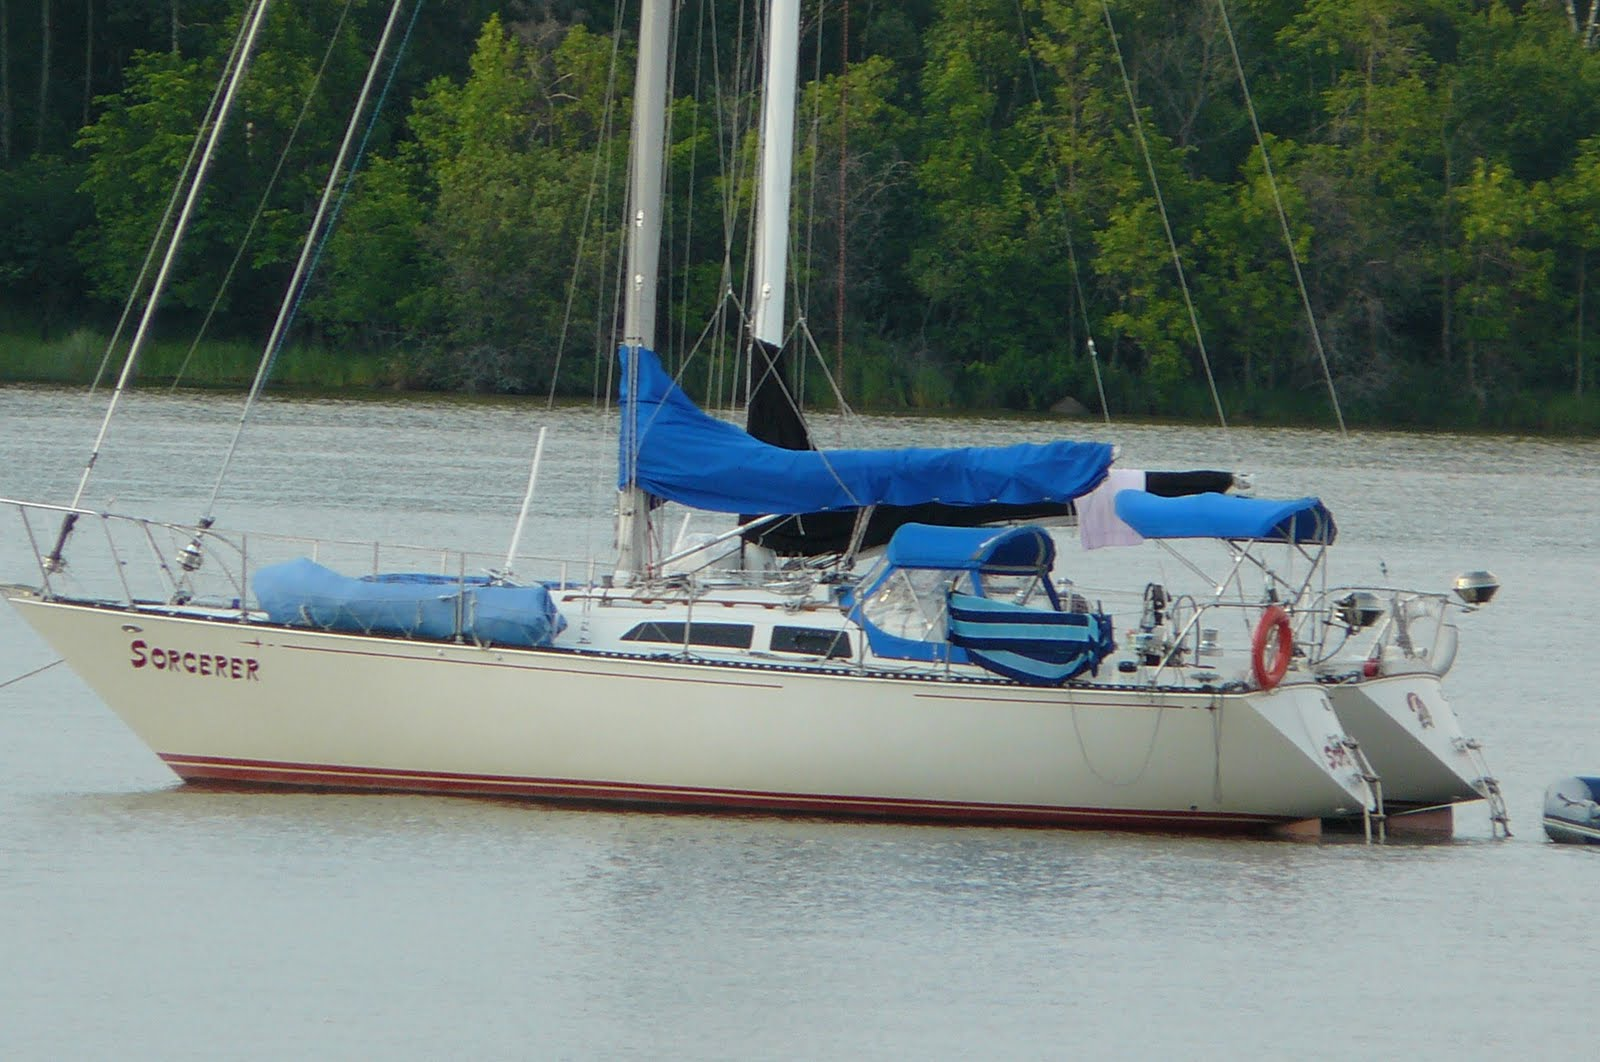 Sorcerer is a lovingly maintained C&C 34 built and launched in 1981.